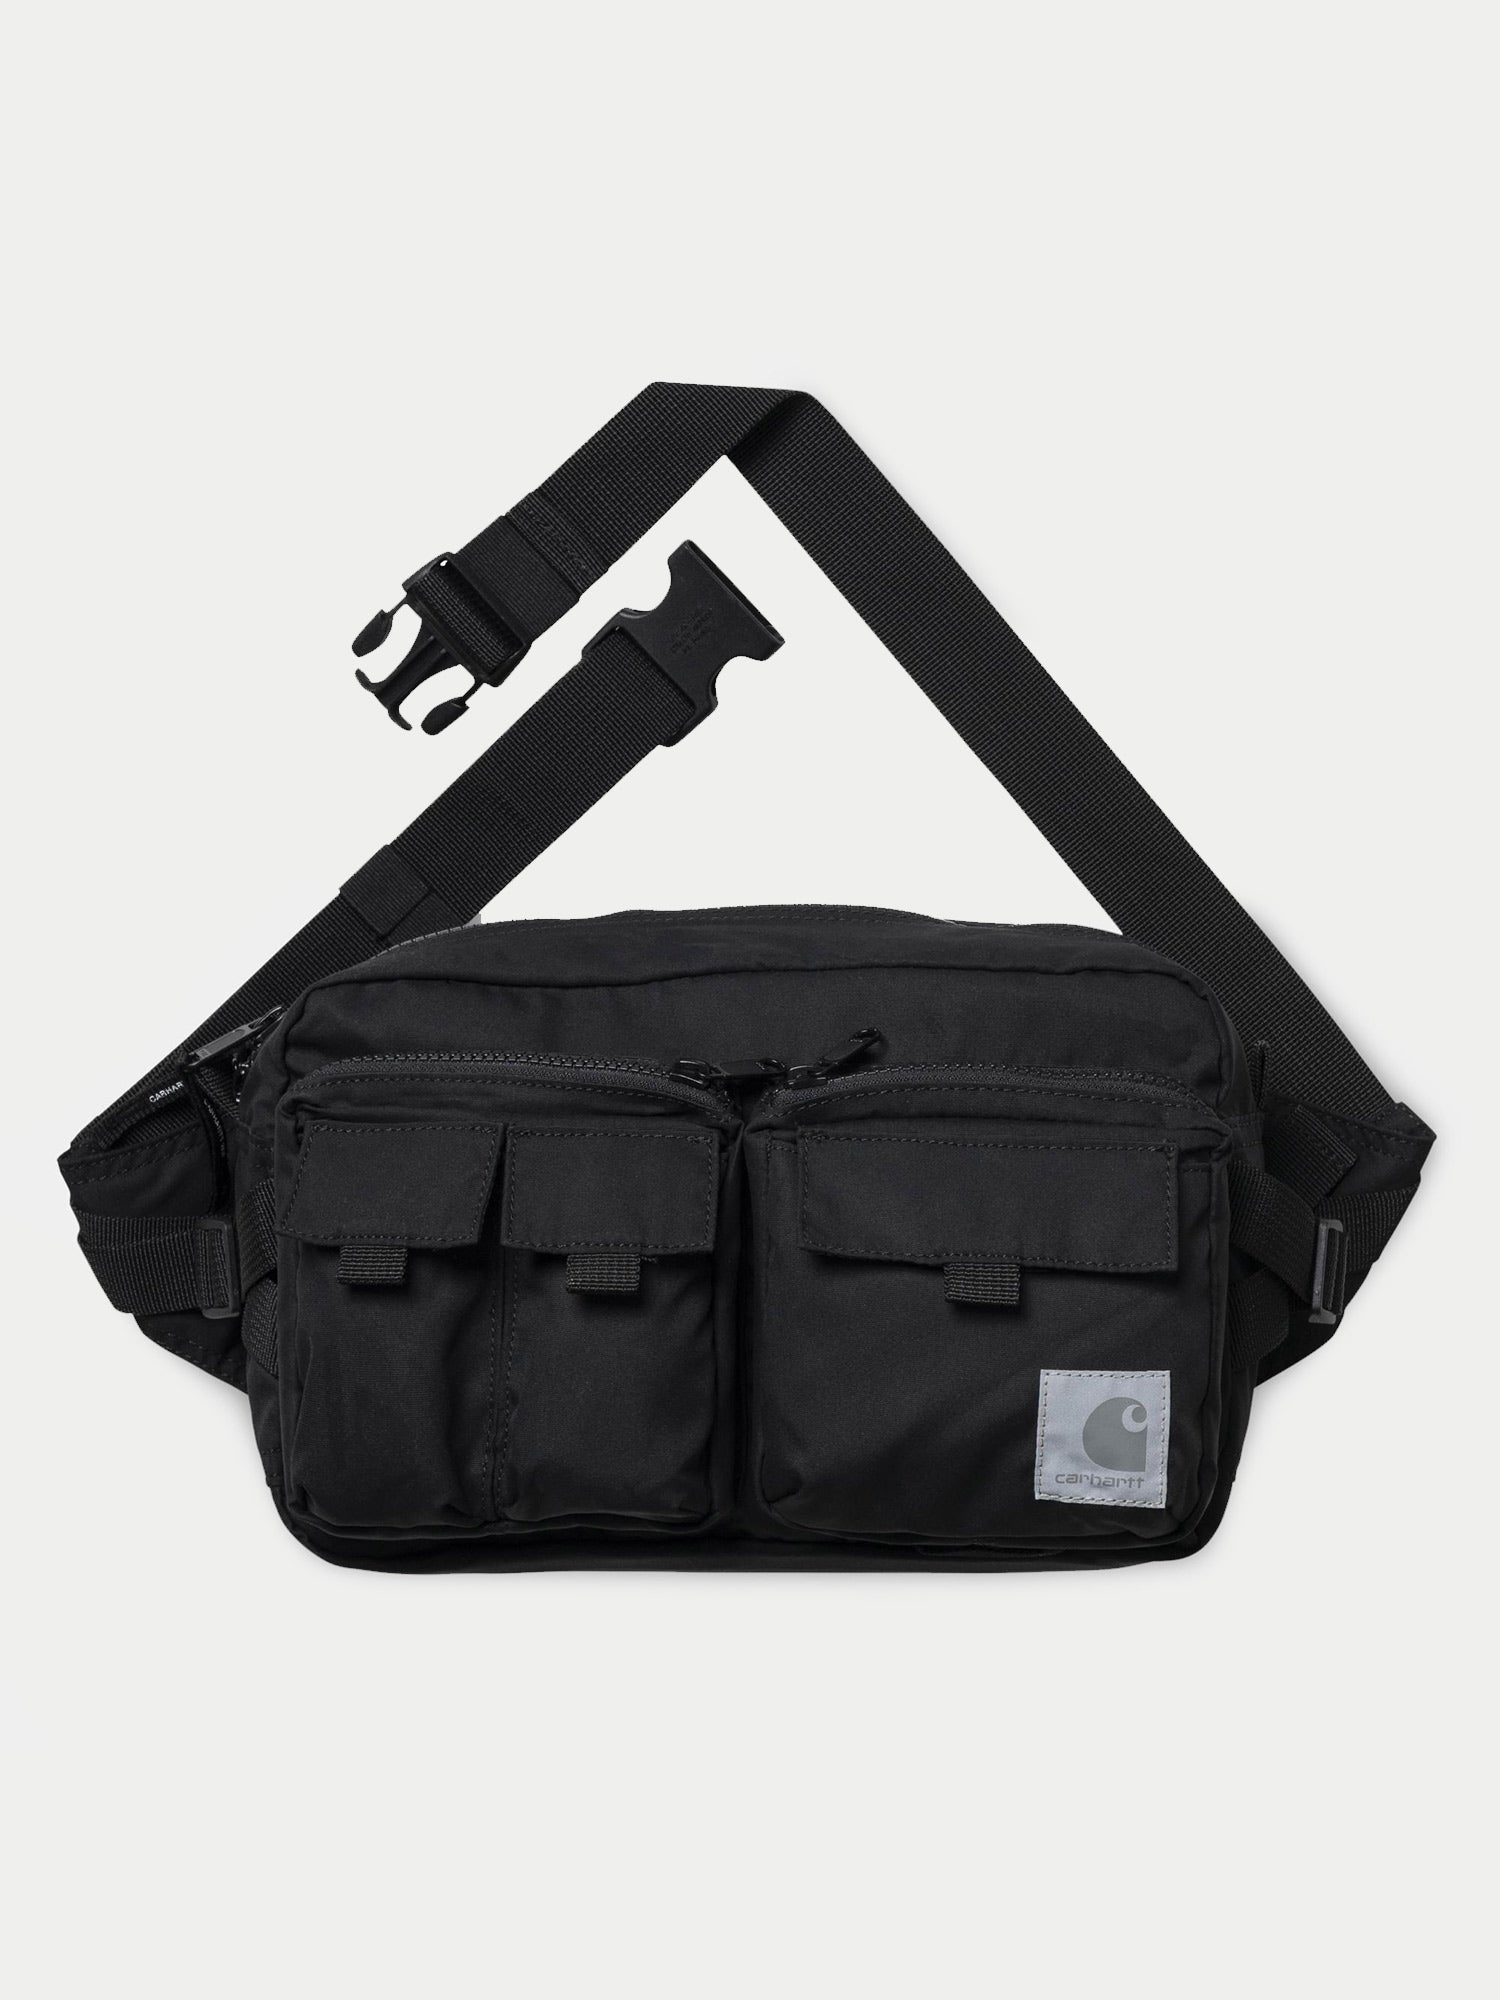 Carhartt Elmwood Hip Bag (Black)